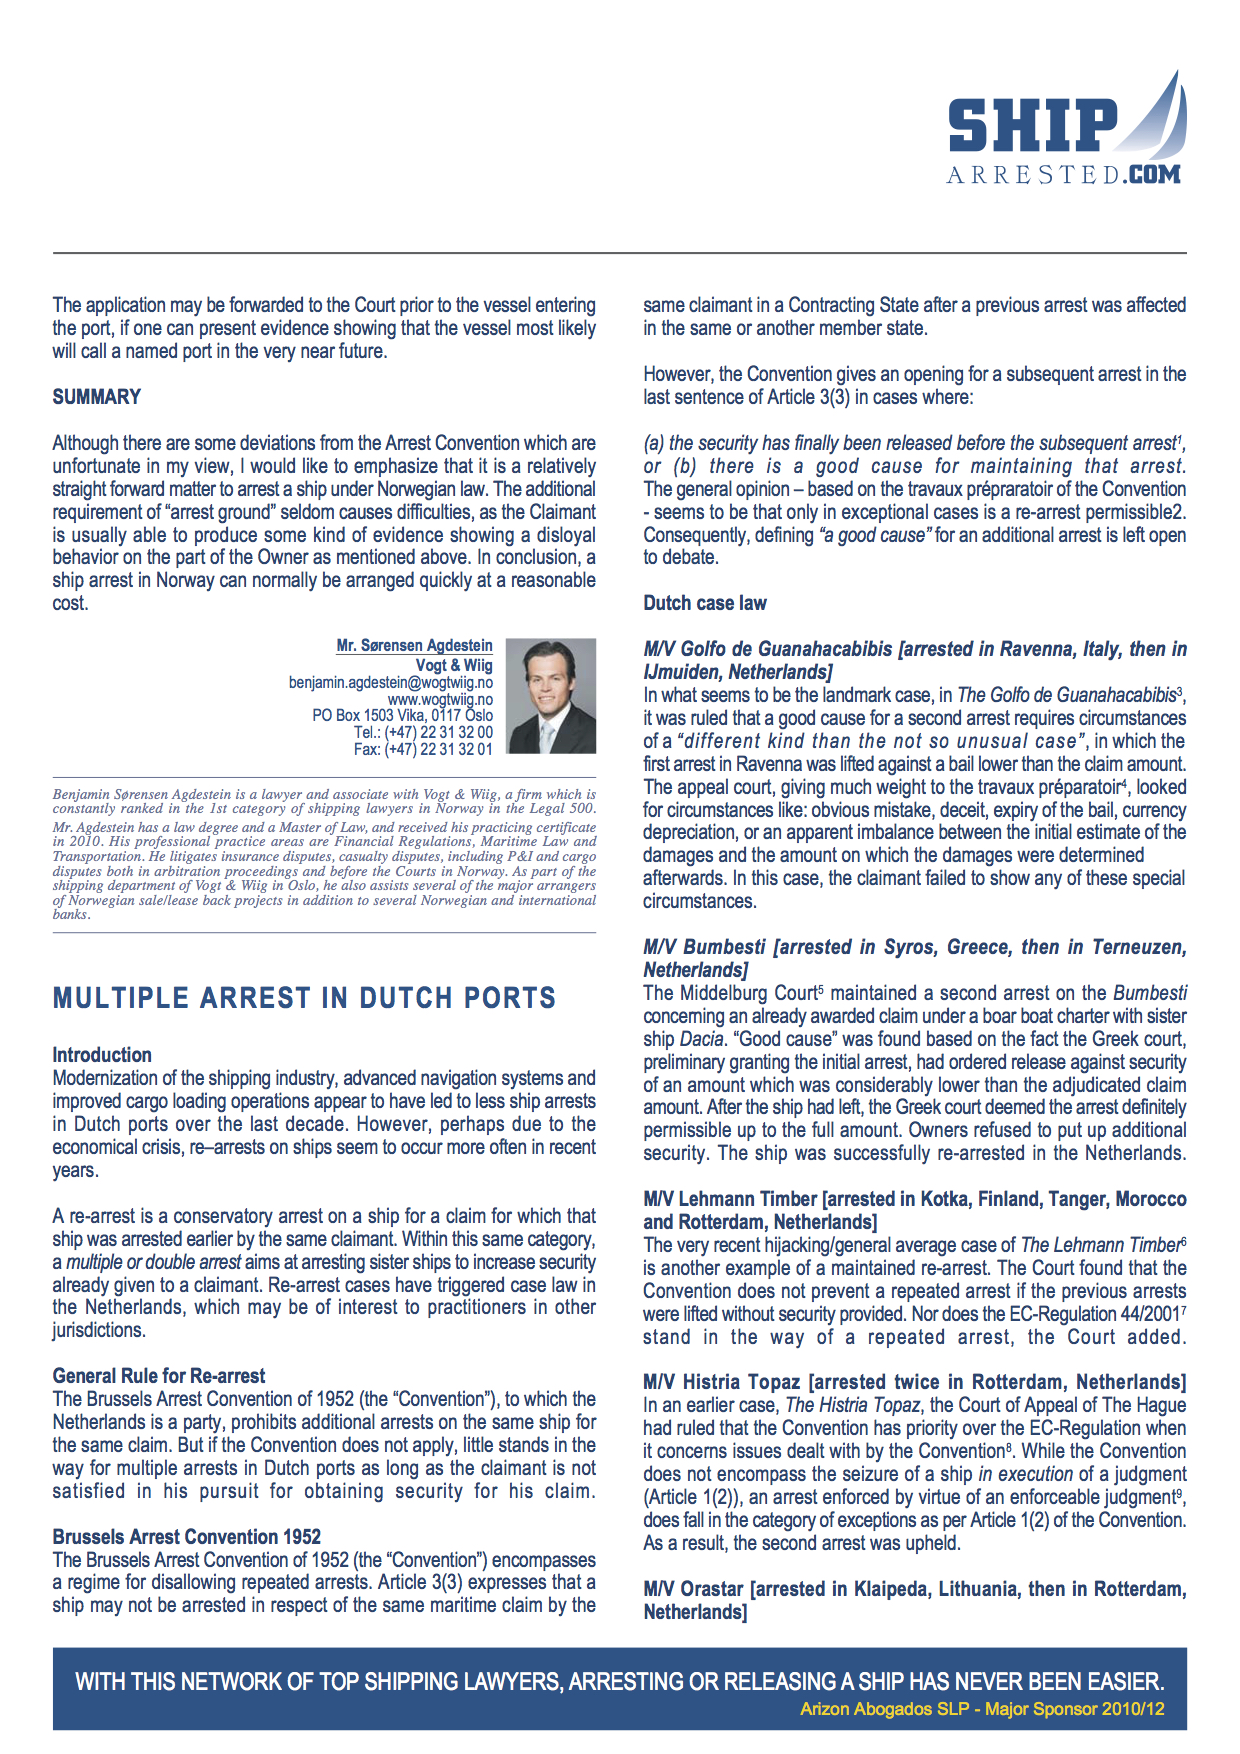 The-Arrest-news-Issue1-page5